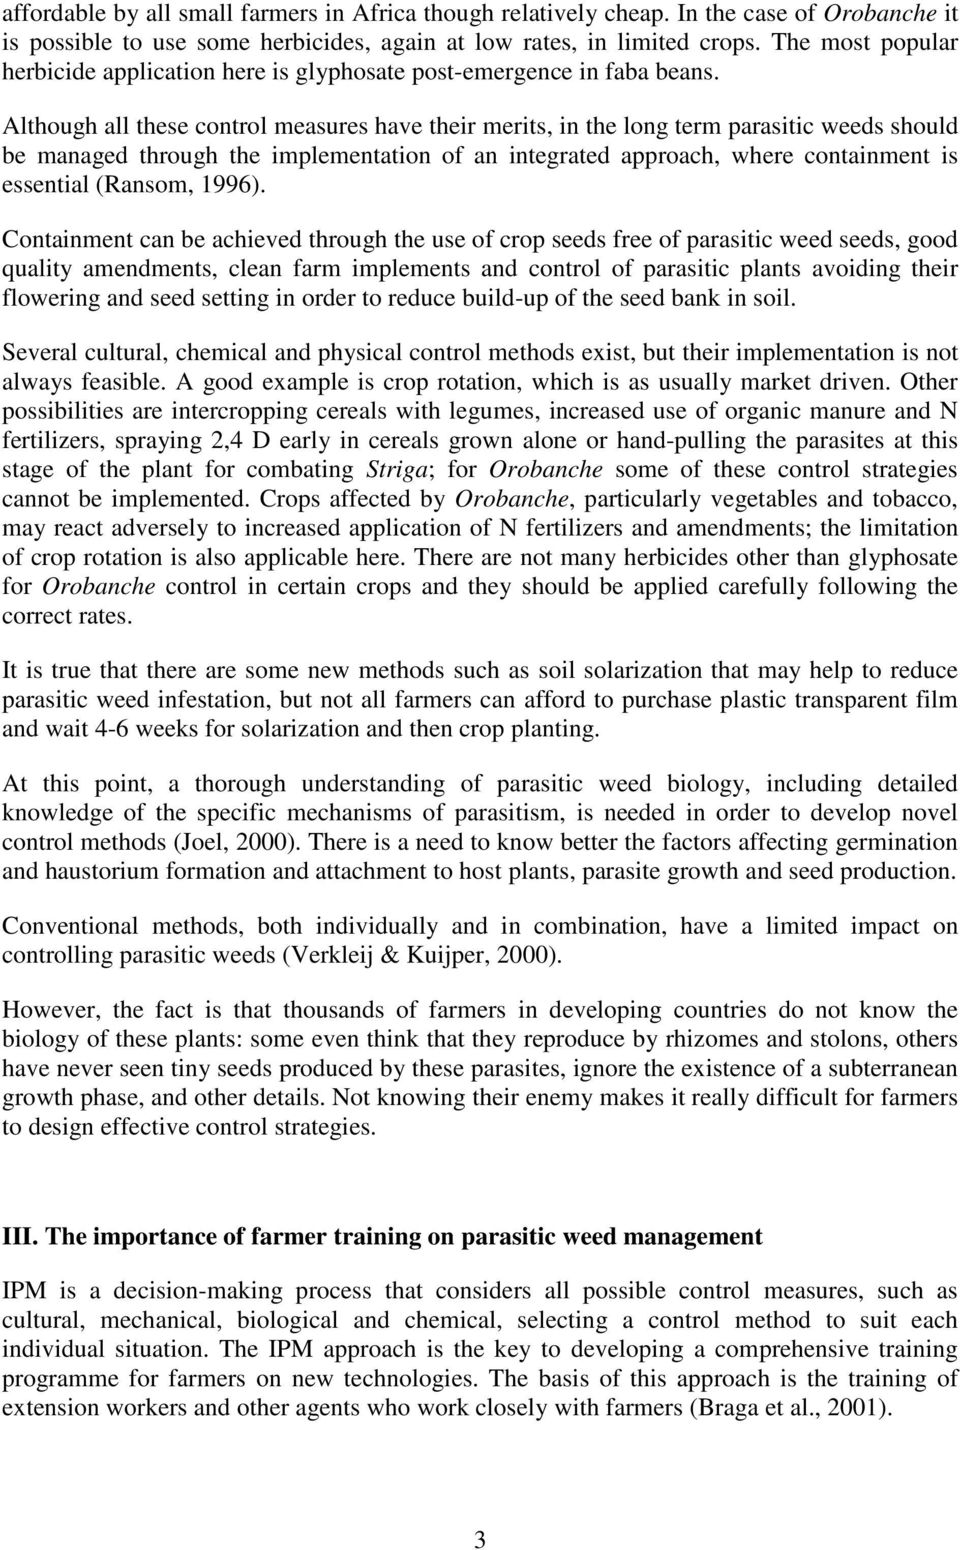 Although all these control measures have their merits, in the long term parasitic weeds should be managed through the implementation of an integrated approach, where containment is essential (Ransom,